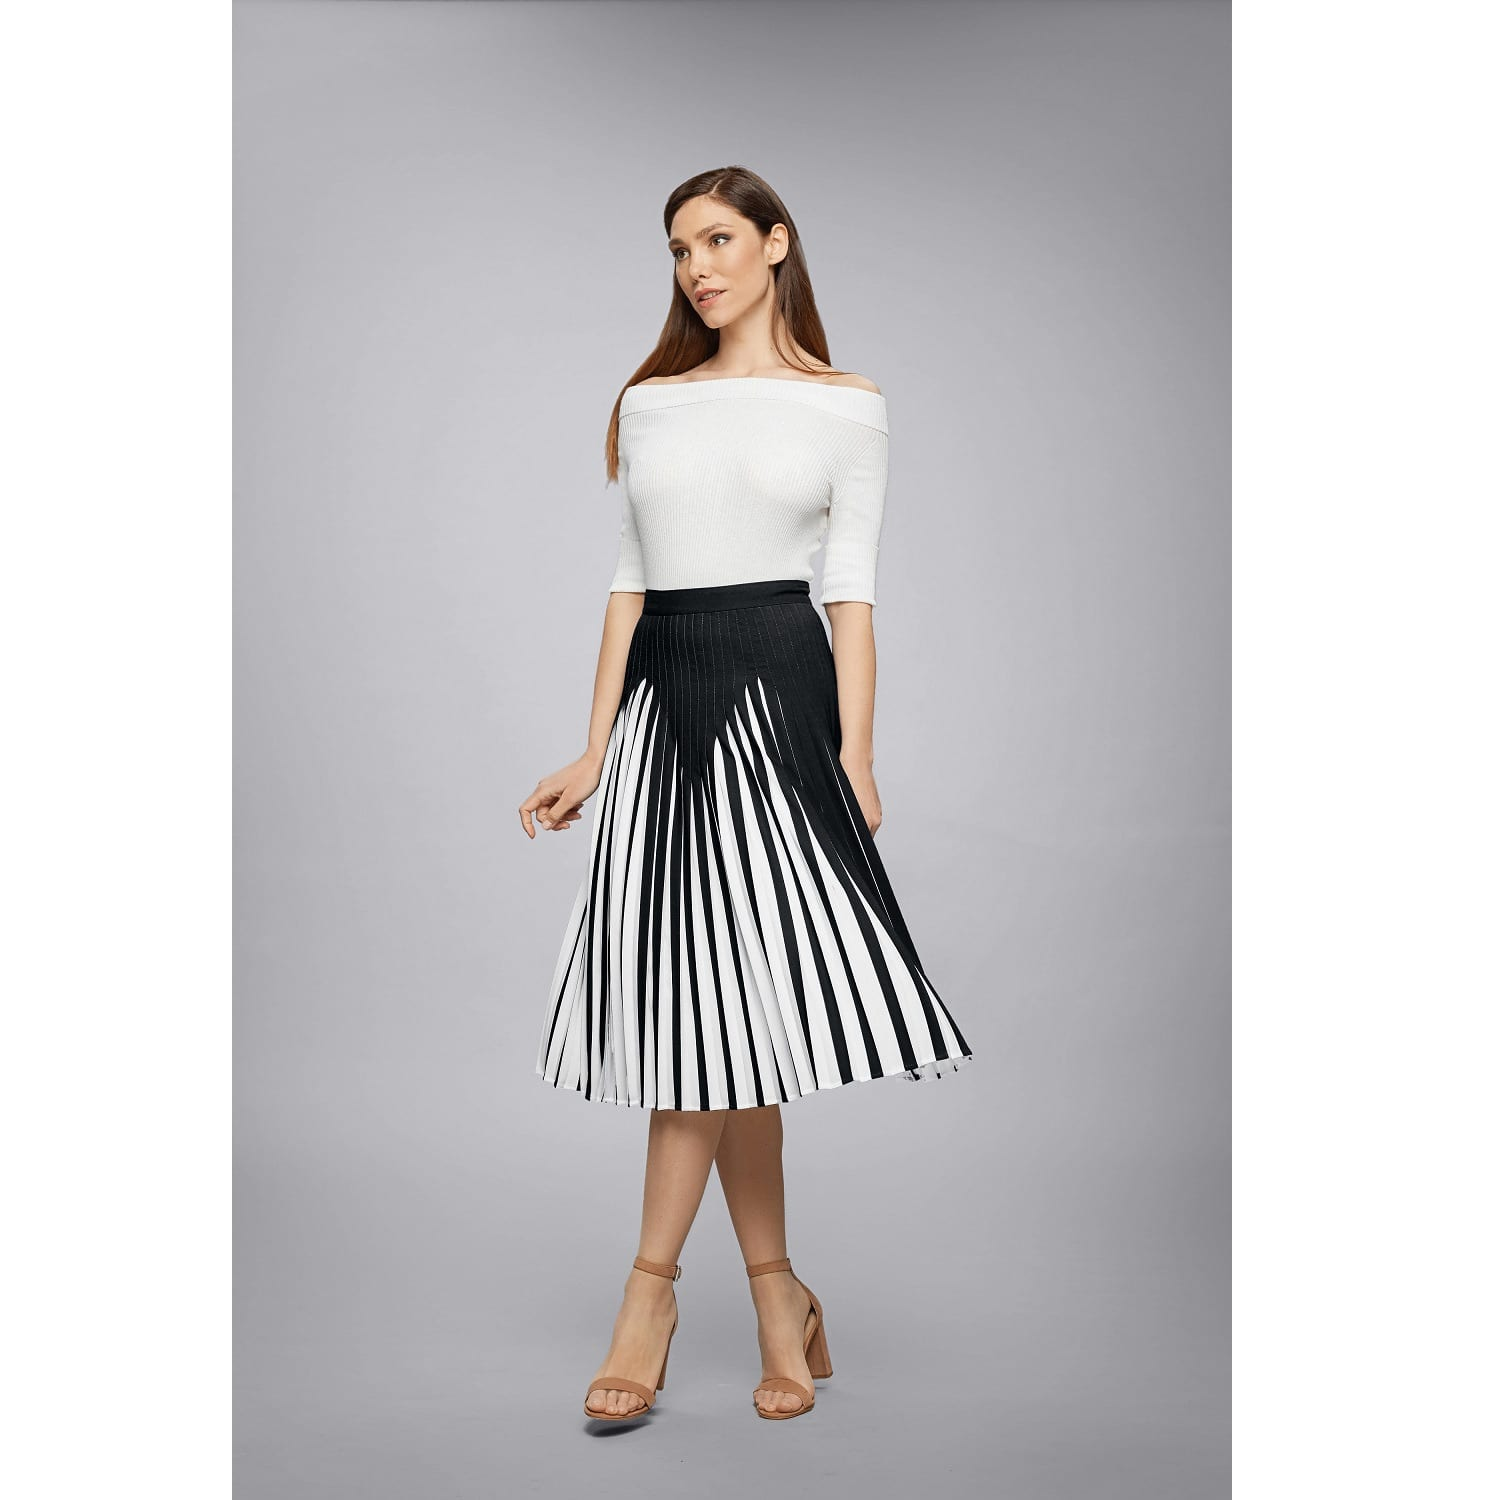 4487de81609cc0 Penelope Black Pleated Two-Tone Midi Skirt | Rumour London | Wolf ...